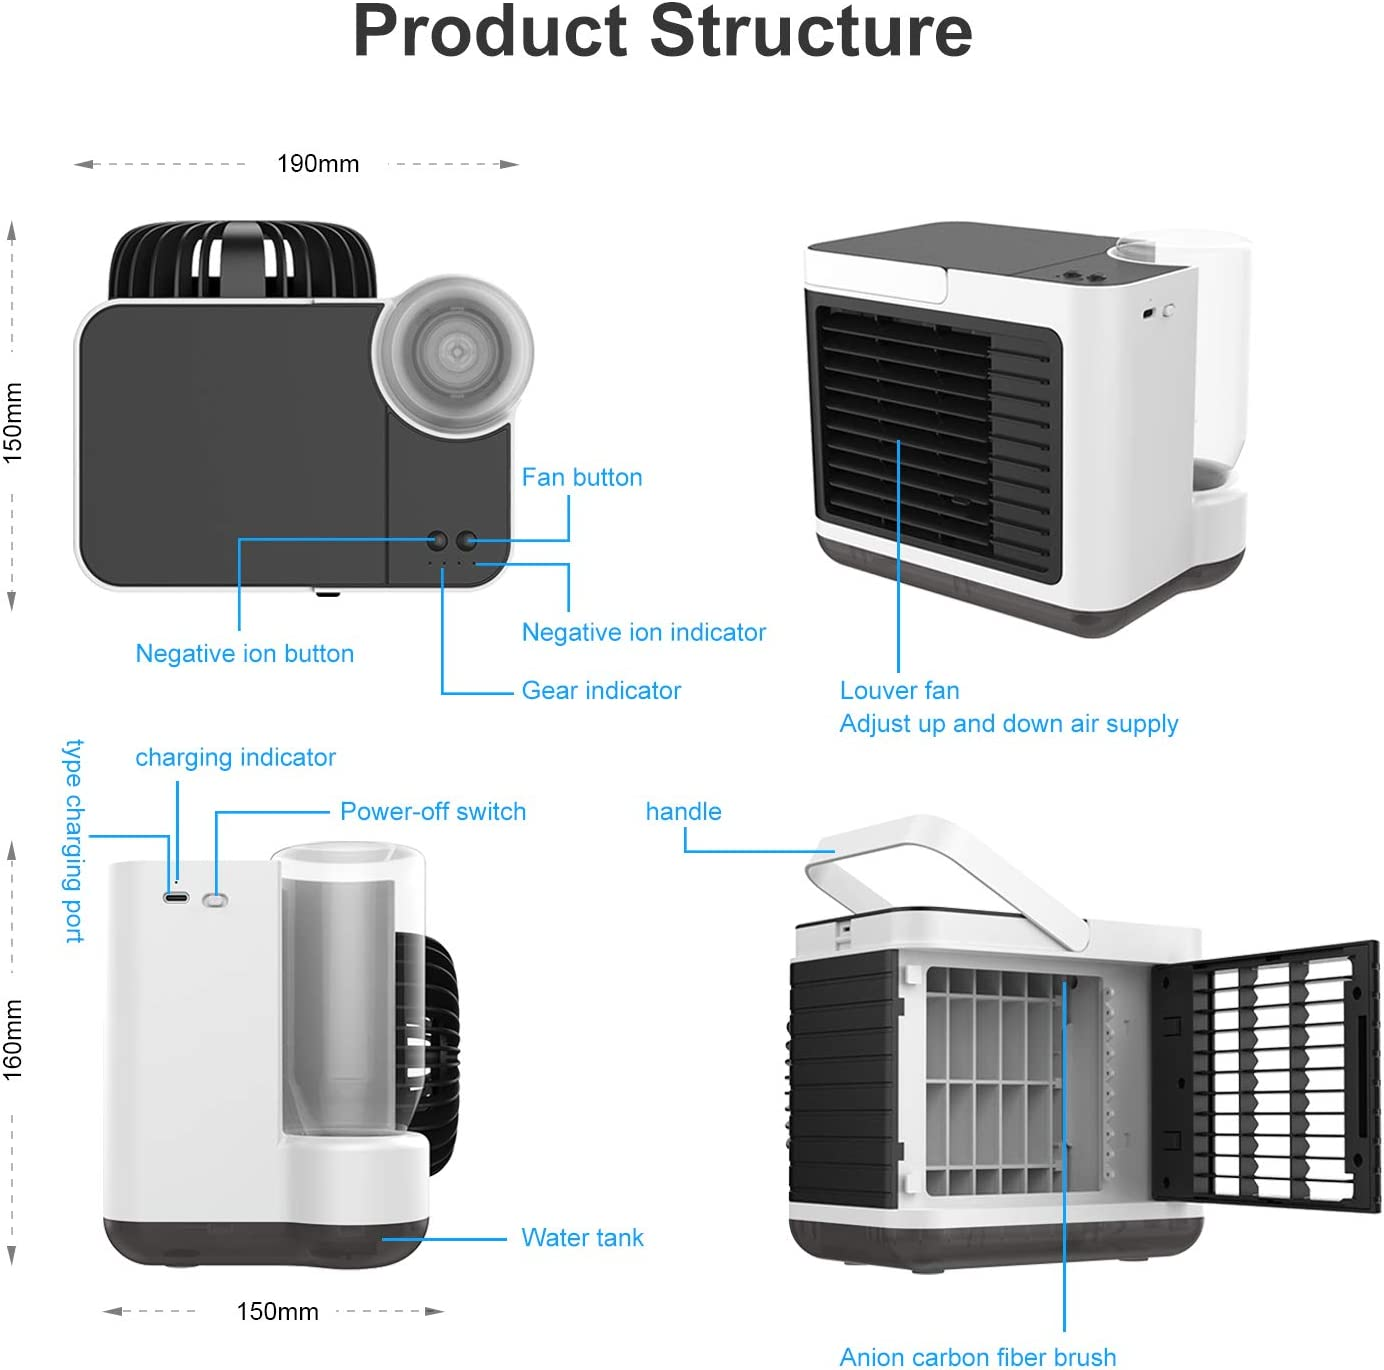 IVSO Air Conditioner Unit Mini, Portable Air Conditioning, Personal Mini Air Coolers, 4 in 1 Air Conditioners, Humidifier, Purifier, Usb air